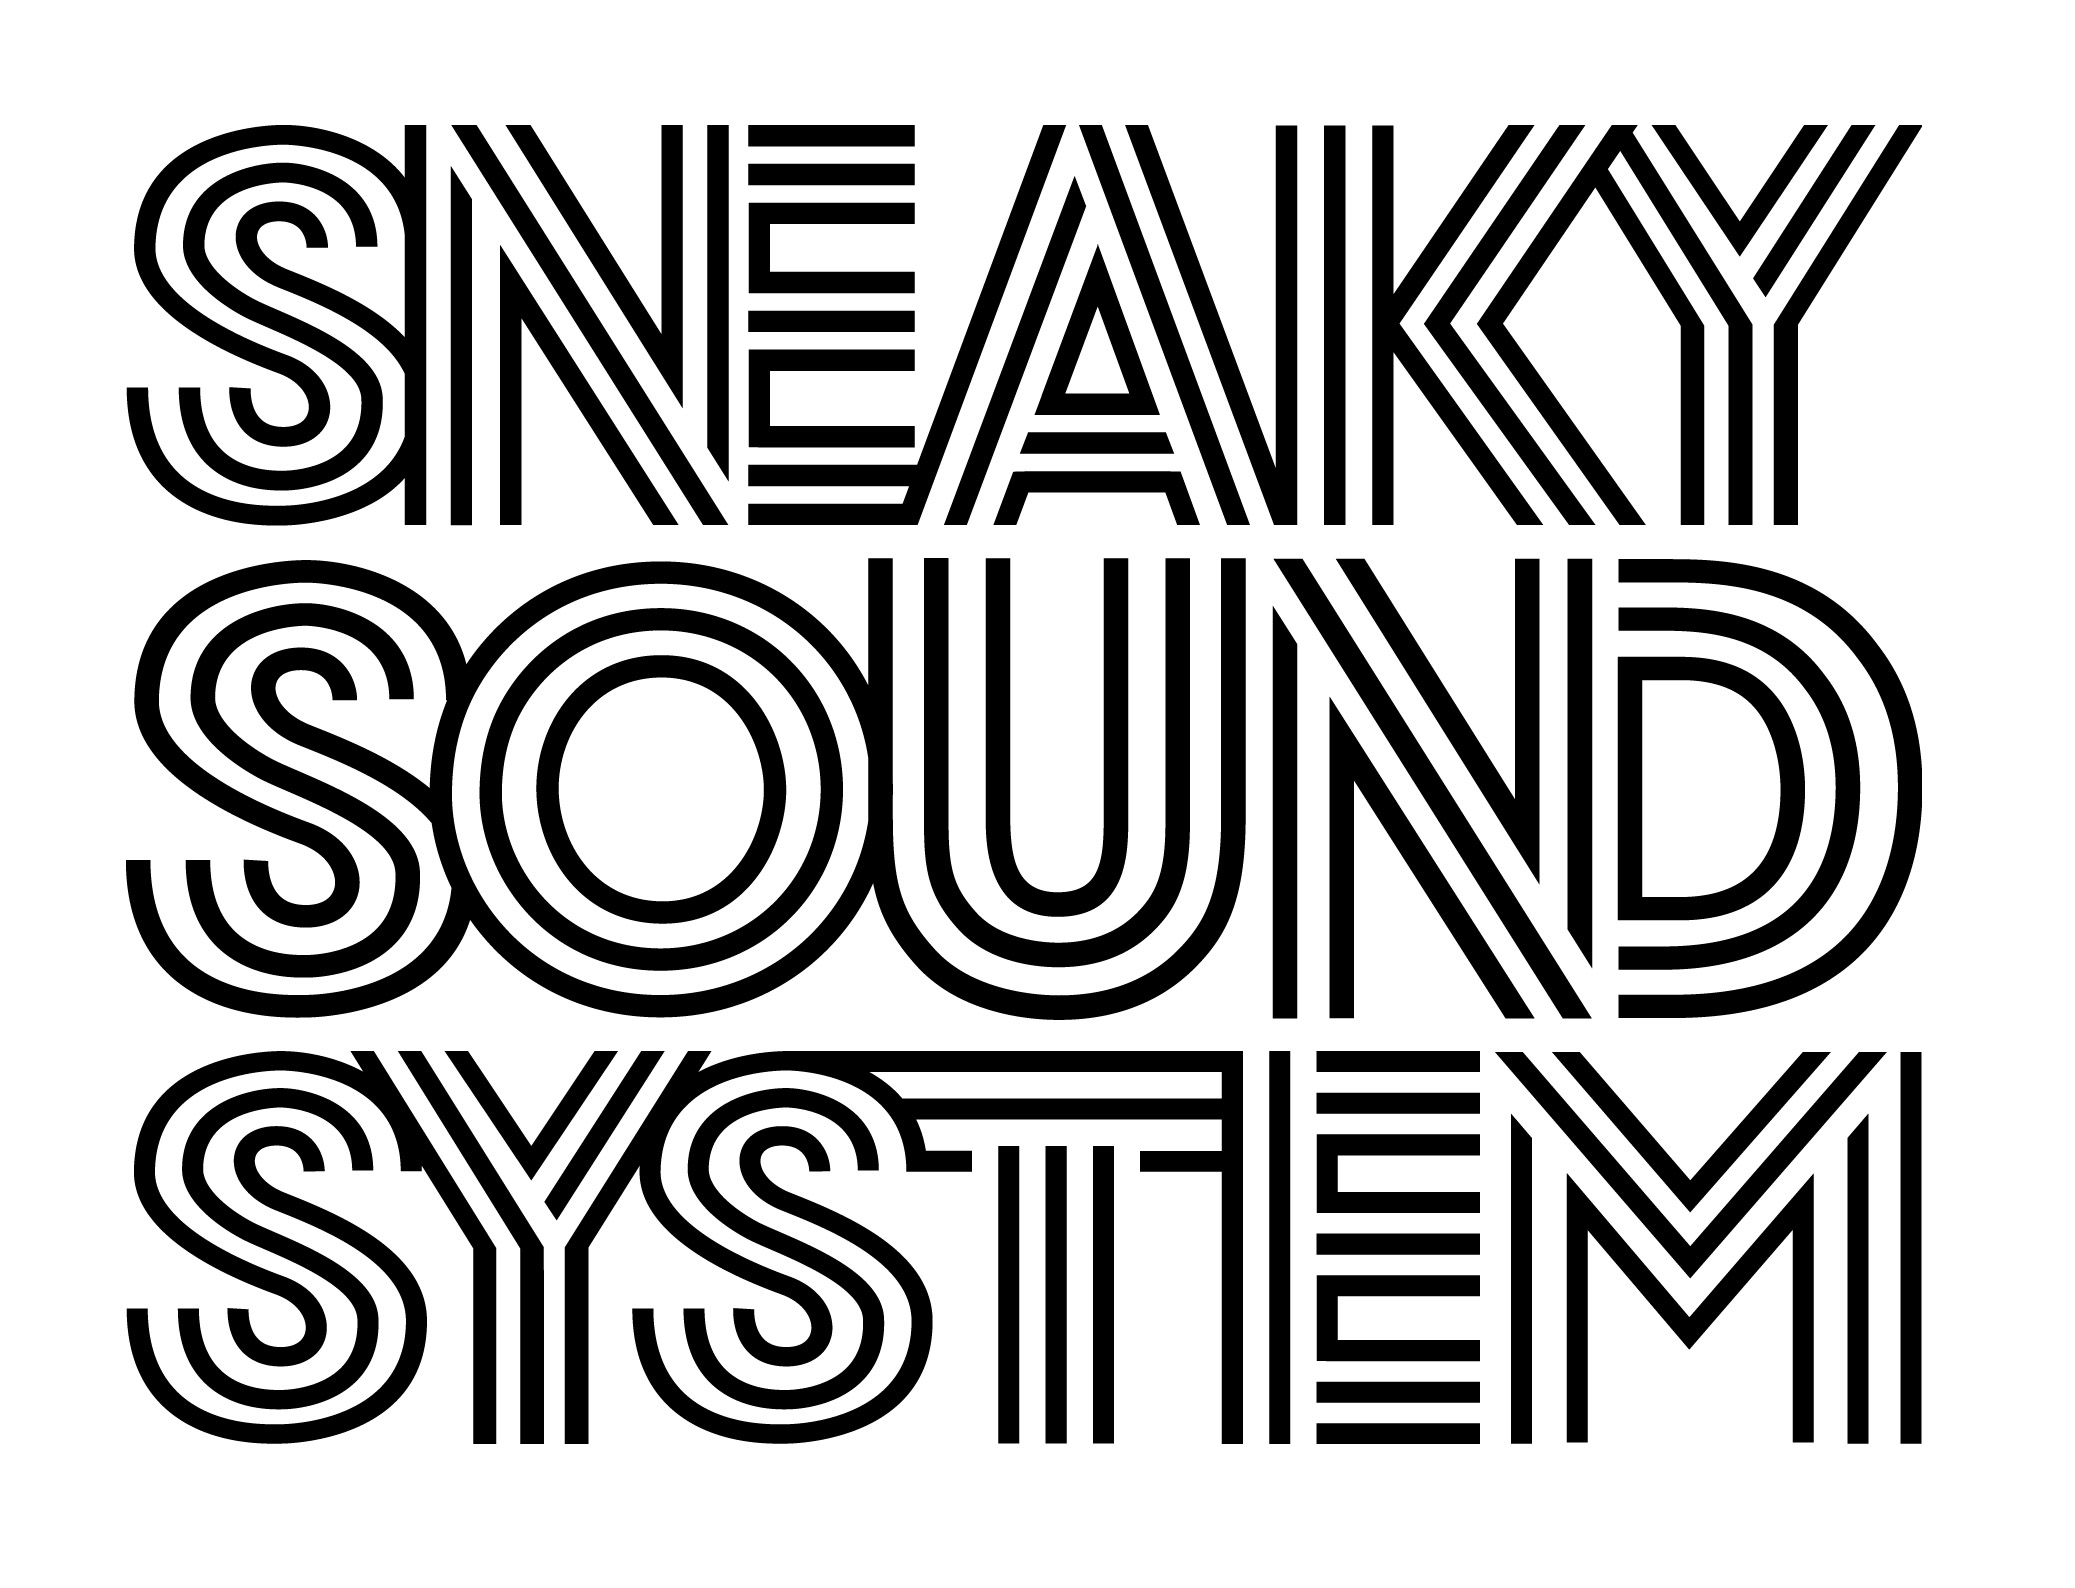 [mp3] Sneaky Sound System - Friends (Plastic Plates remix)